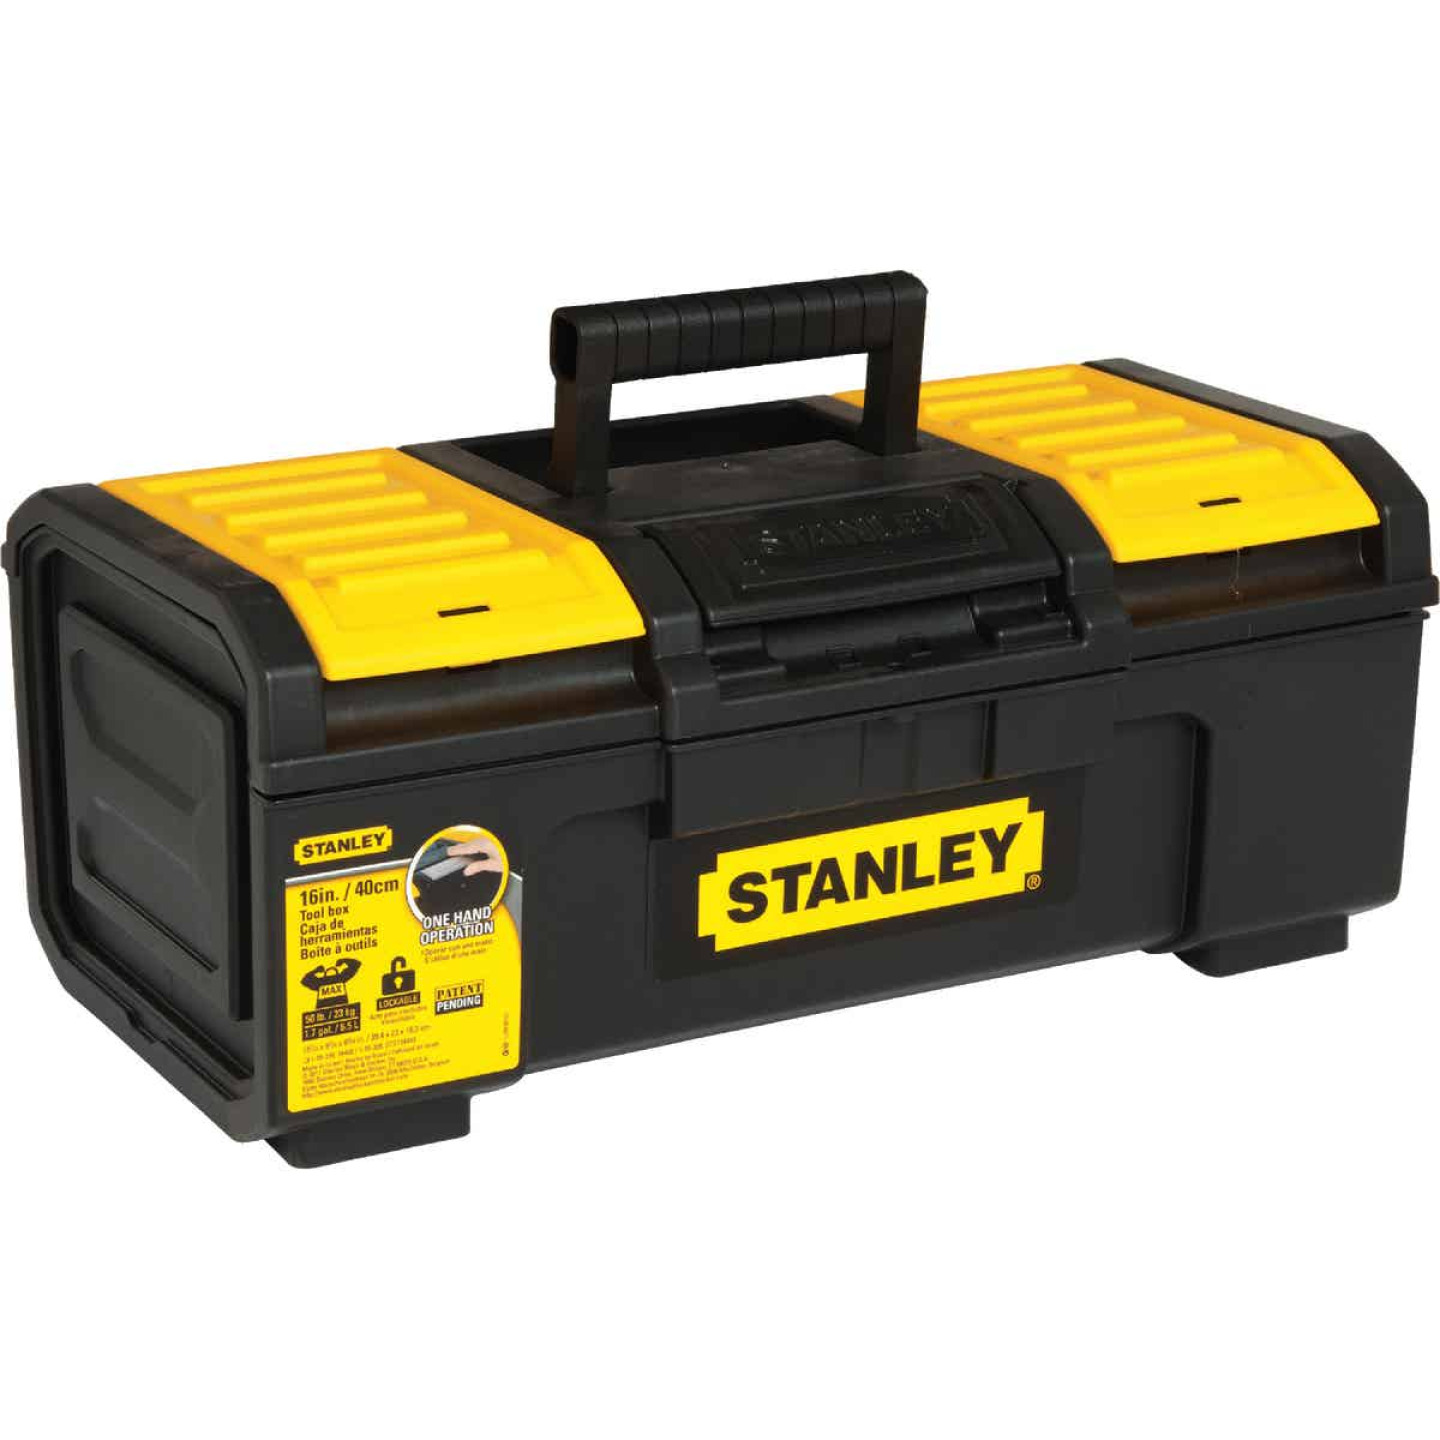 Stanley 16 In. Auto Latch Toolbox Image 3